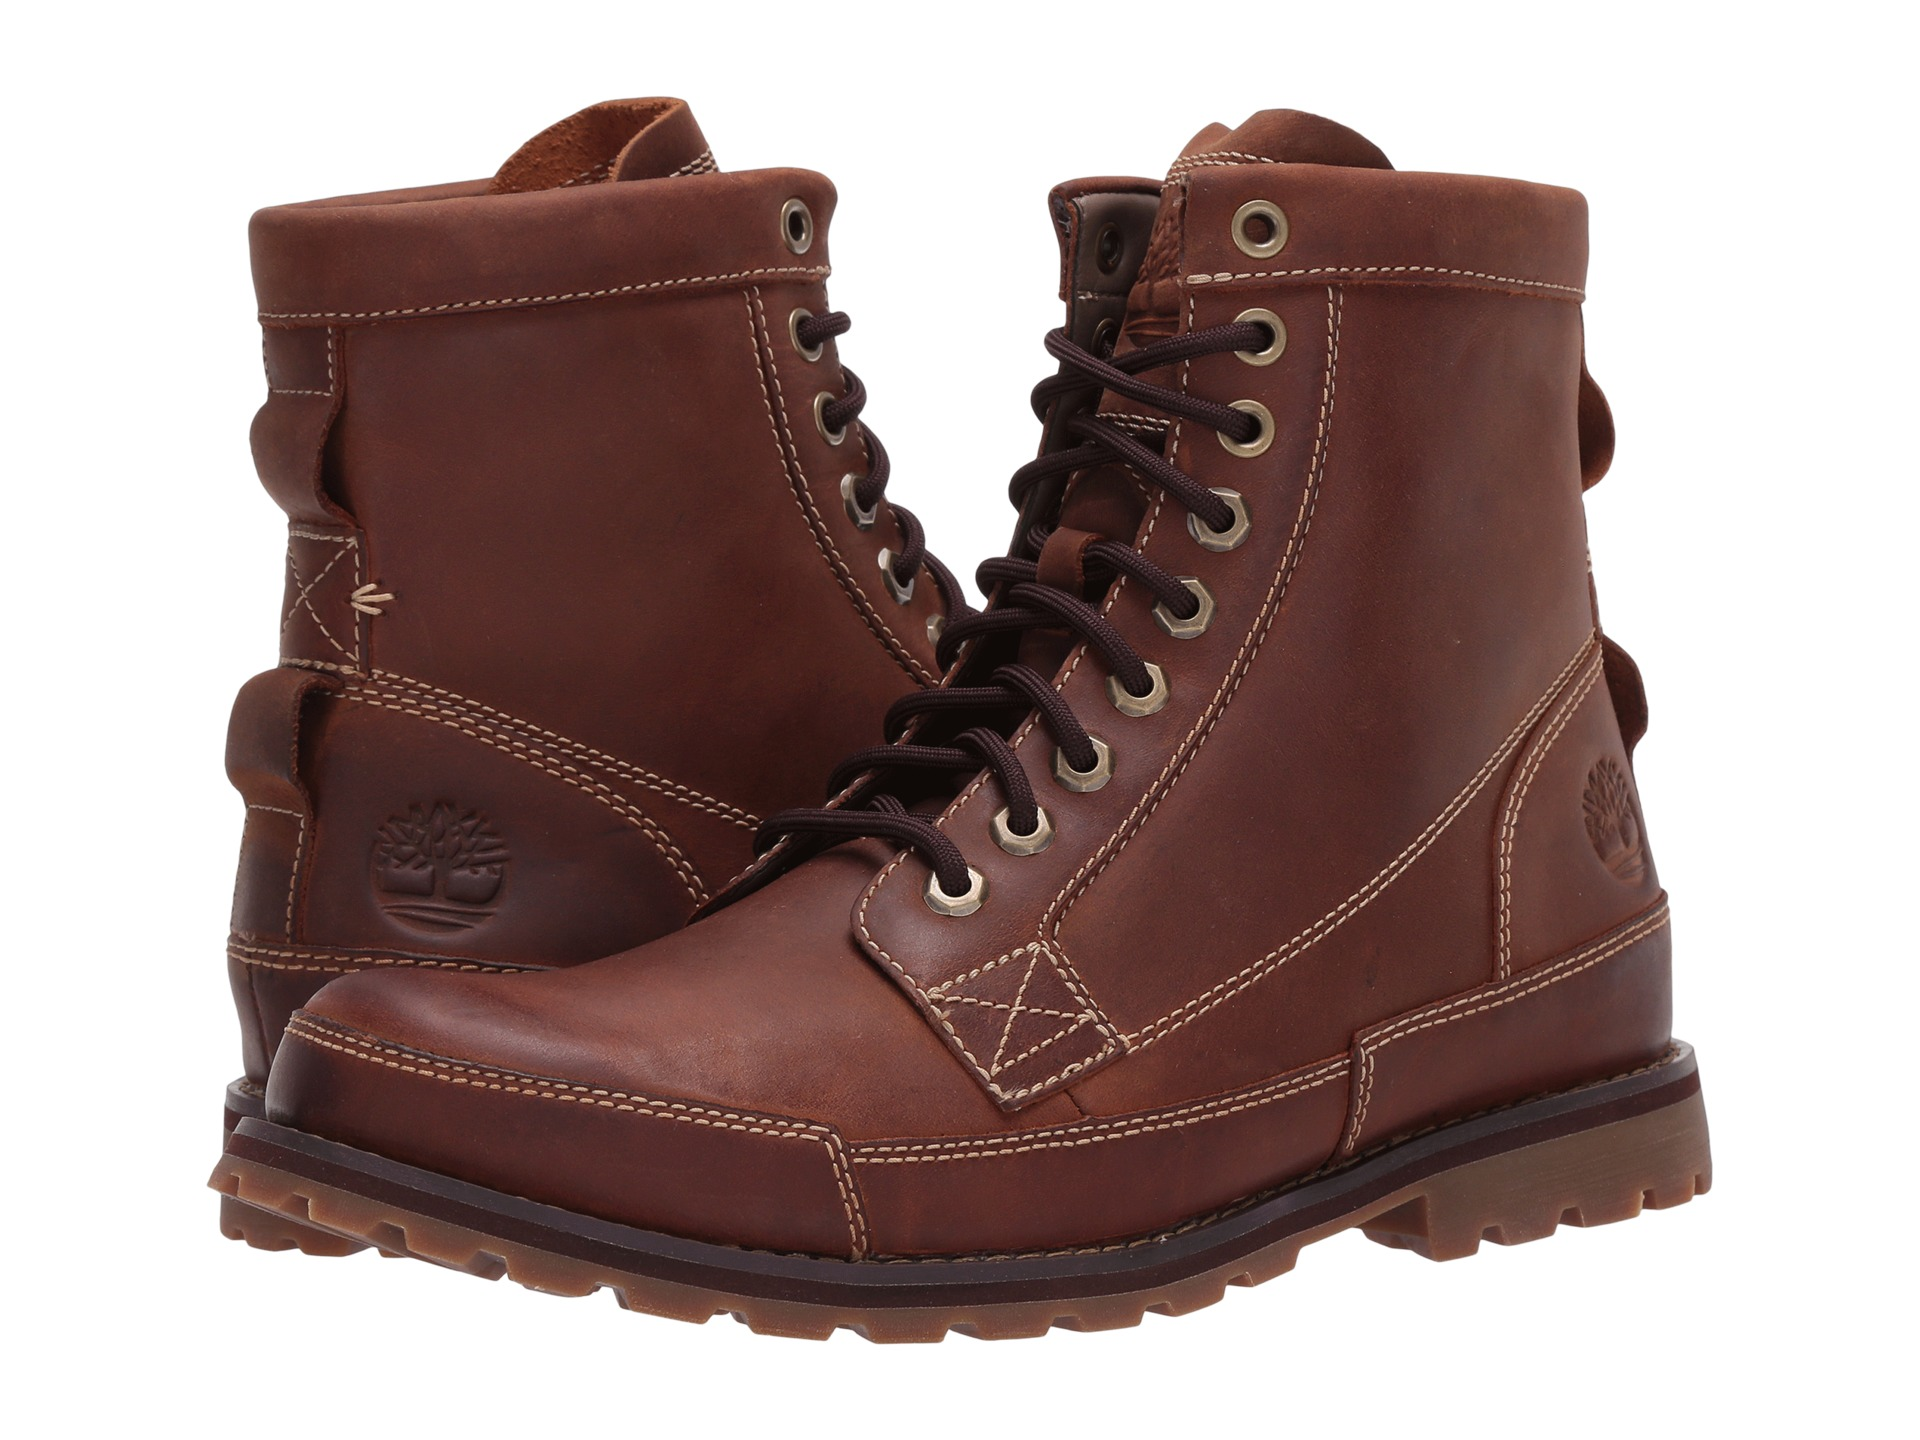 timberland earthkeepers men's 6 inch brown leather boots